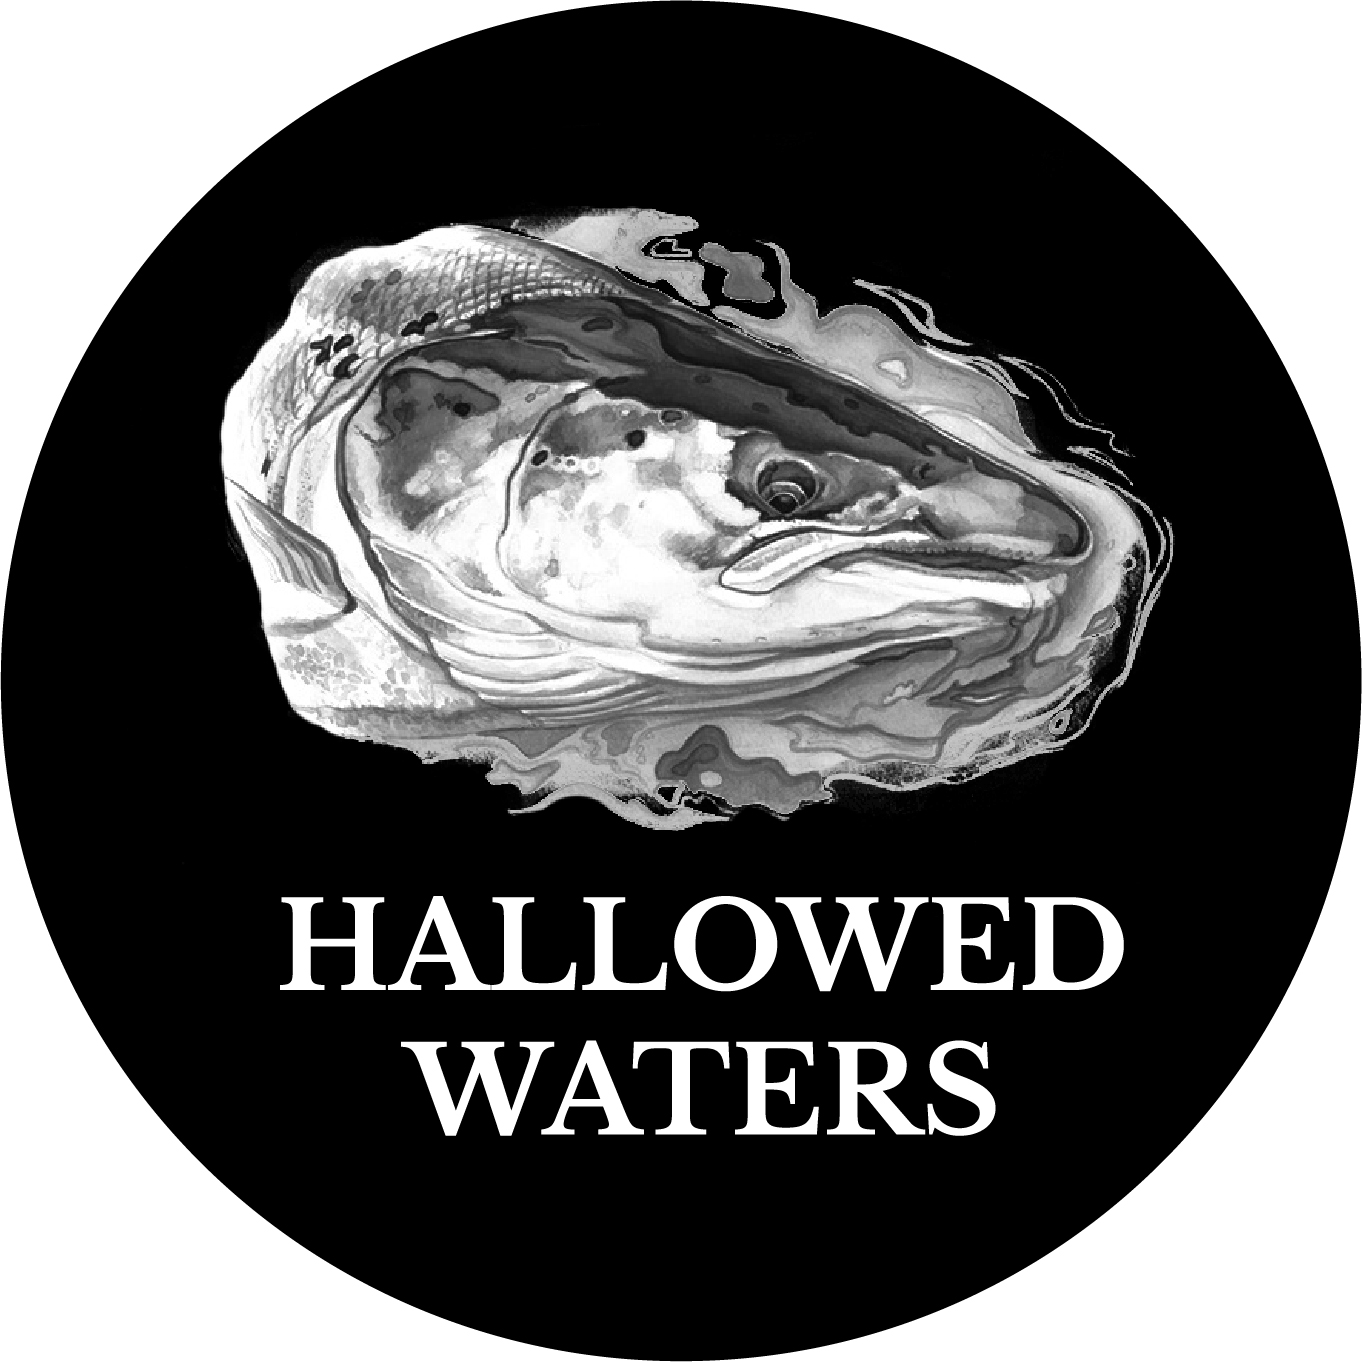 Hallowed Waters white logo in circle